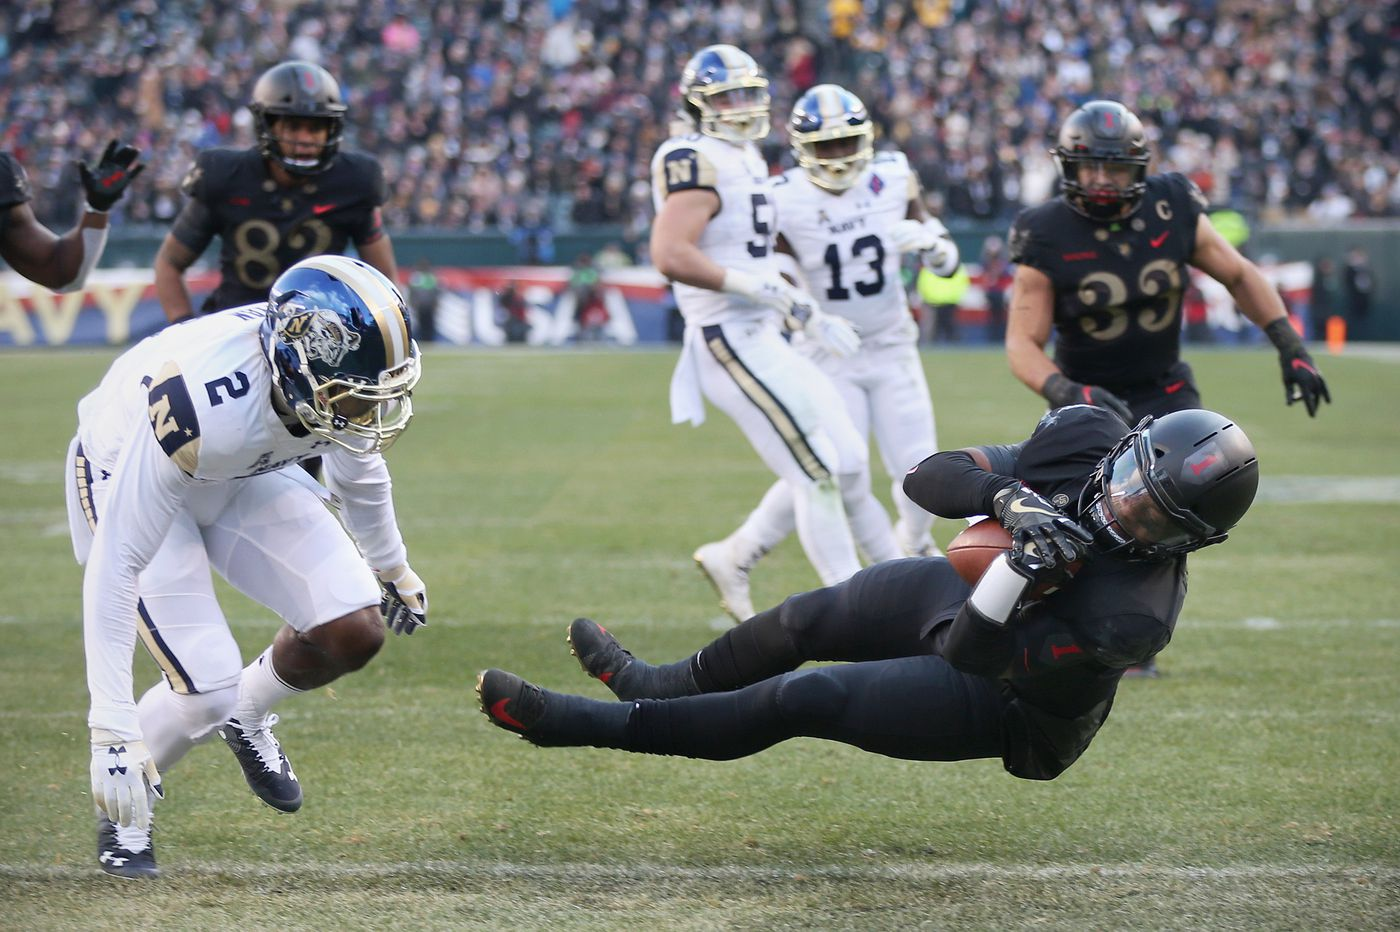 As expected, Army's run game was the difference in its win over Navy